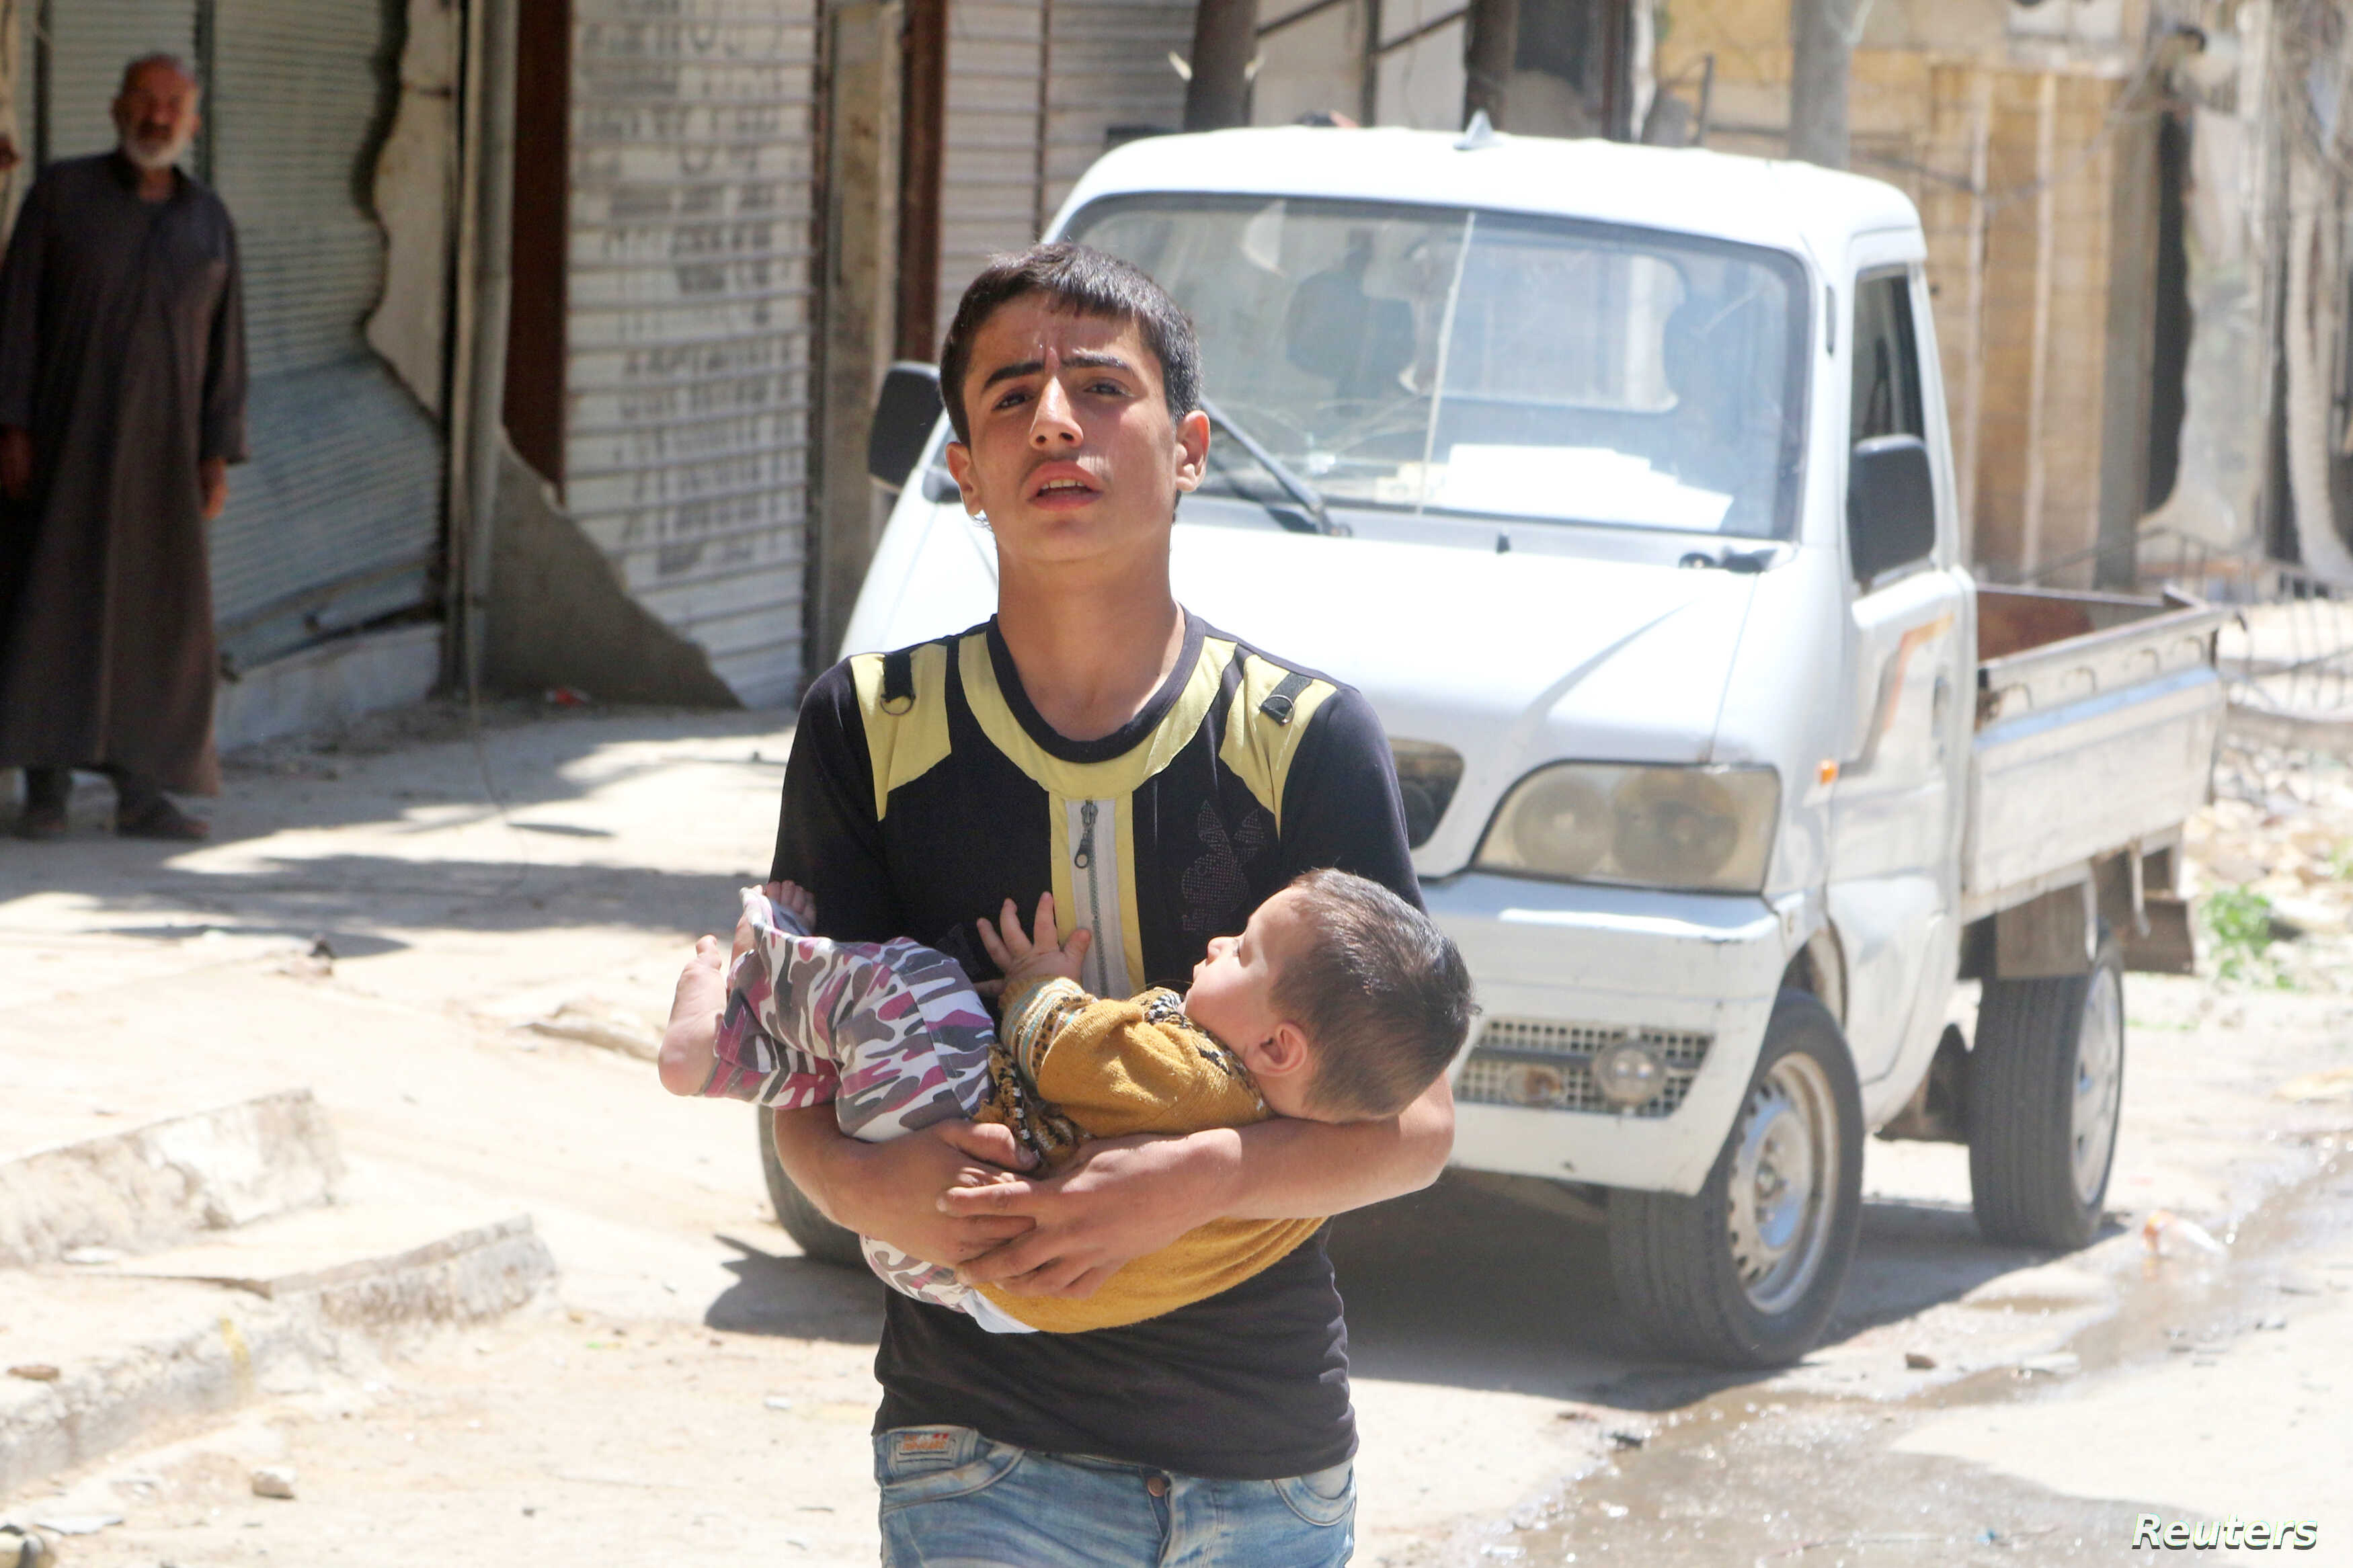 A civilian evacuates a baby from a site hit by airstrikes in the rebel-held area of Aleppo's al-Fardous district, Syria, April 29, 2016.